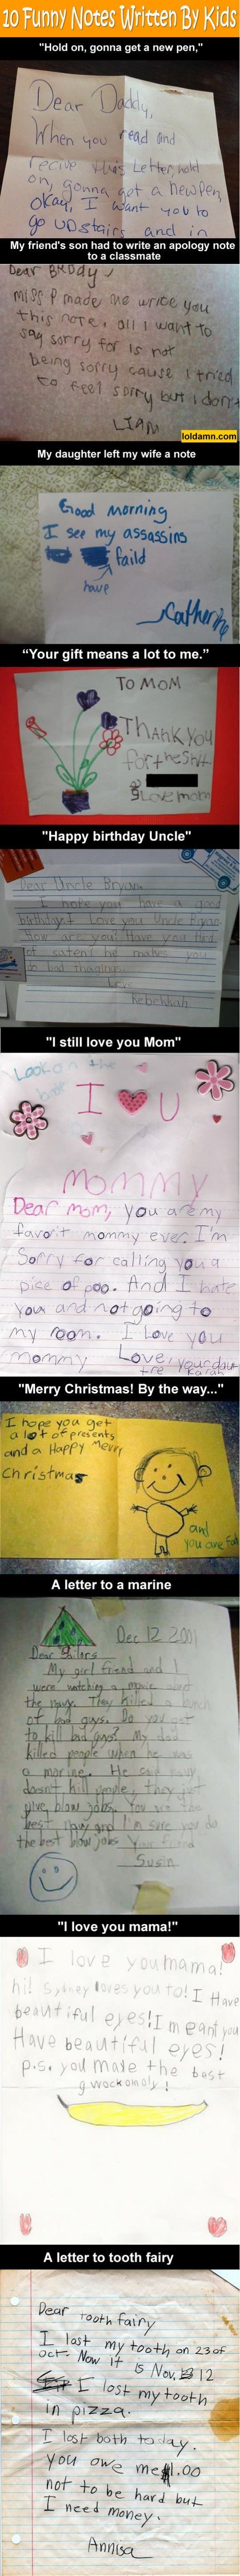 10-funny-notes-written-by-kids-christmas-shopping-540x5805